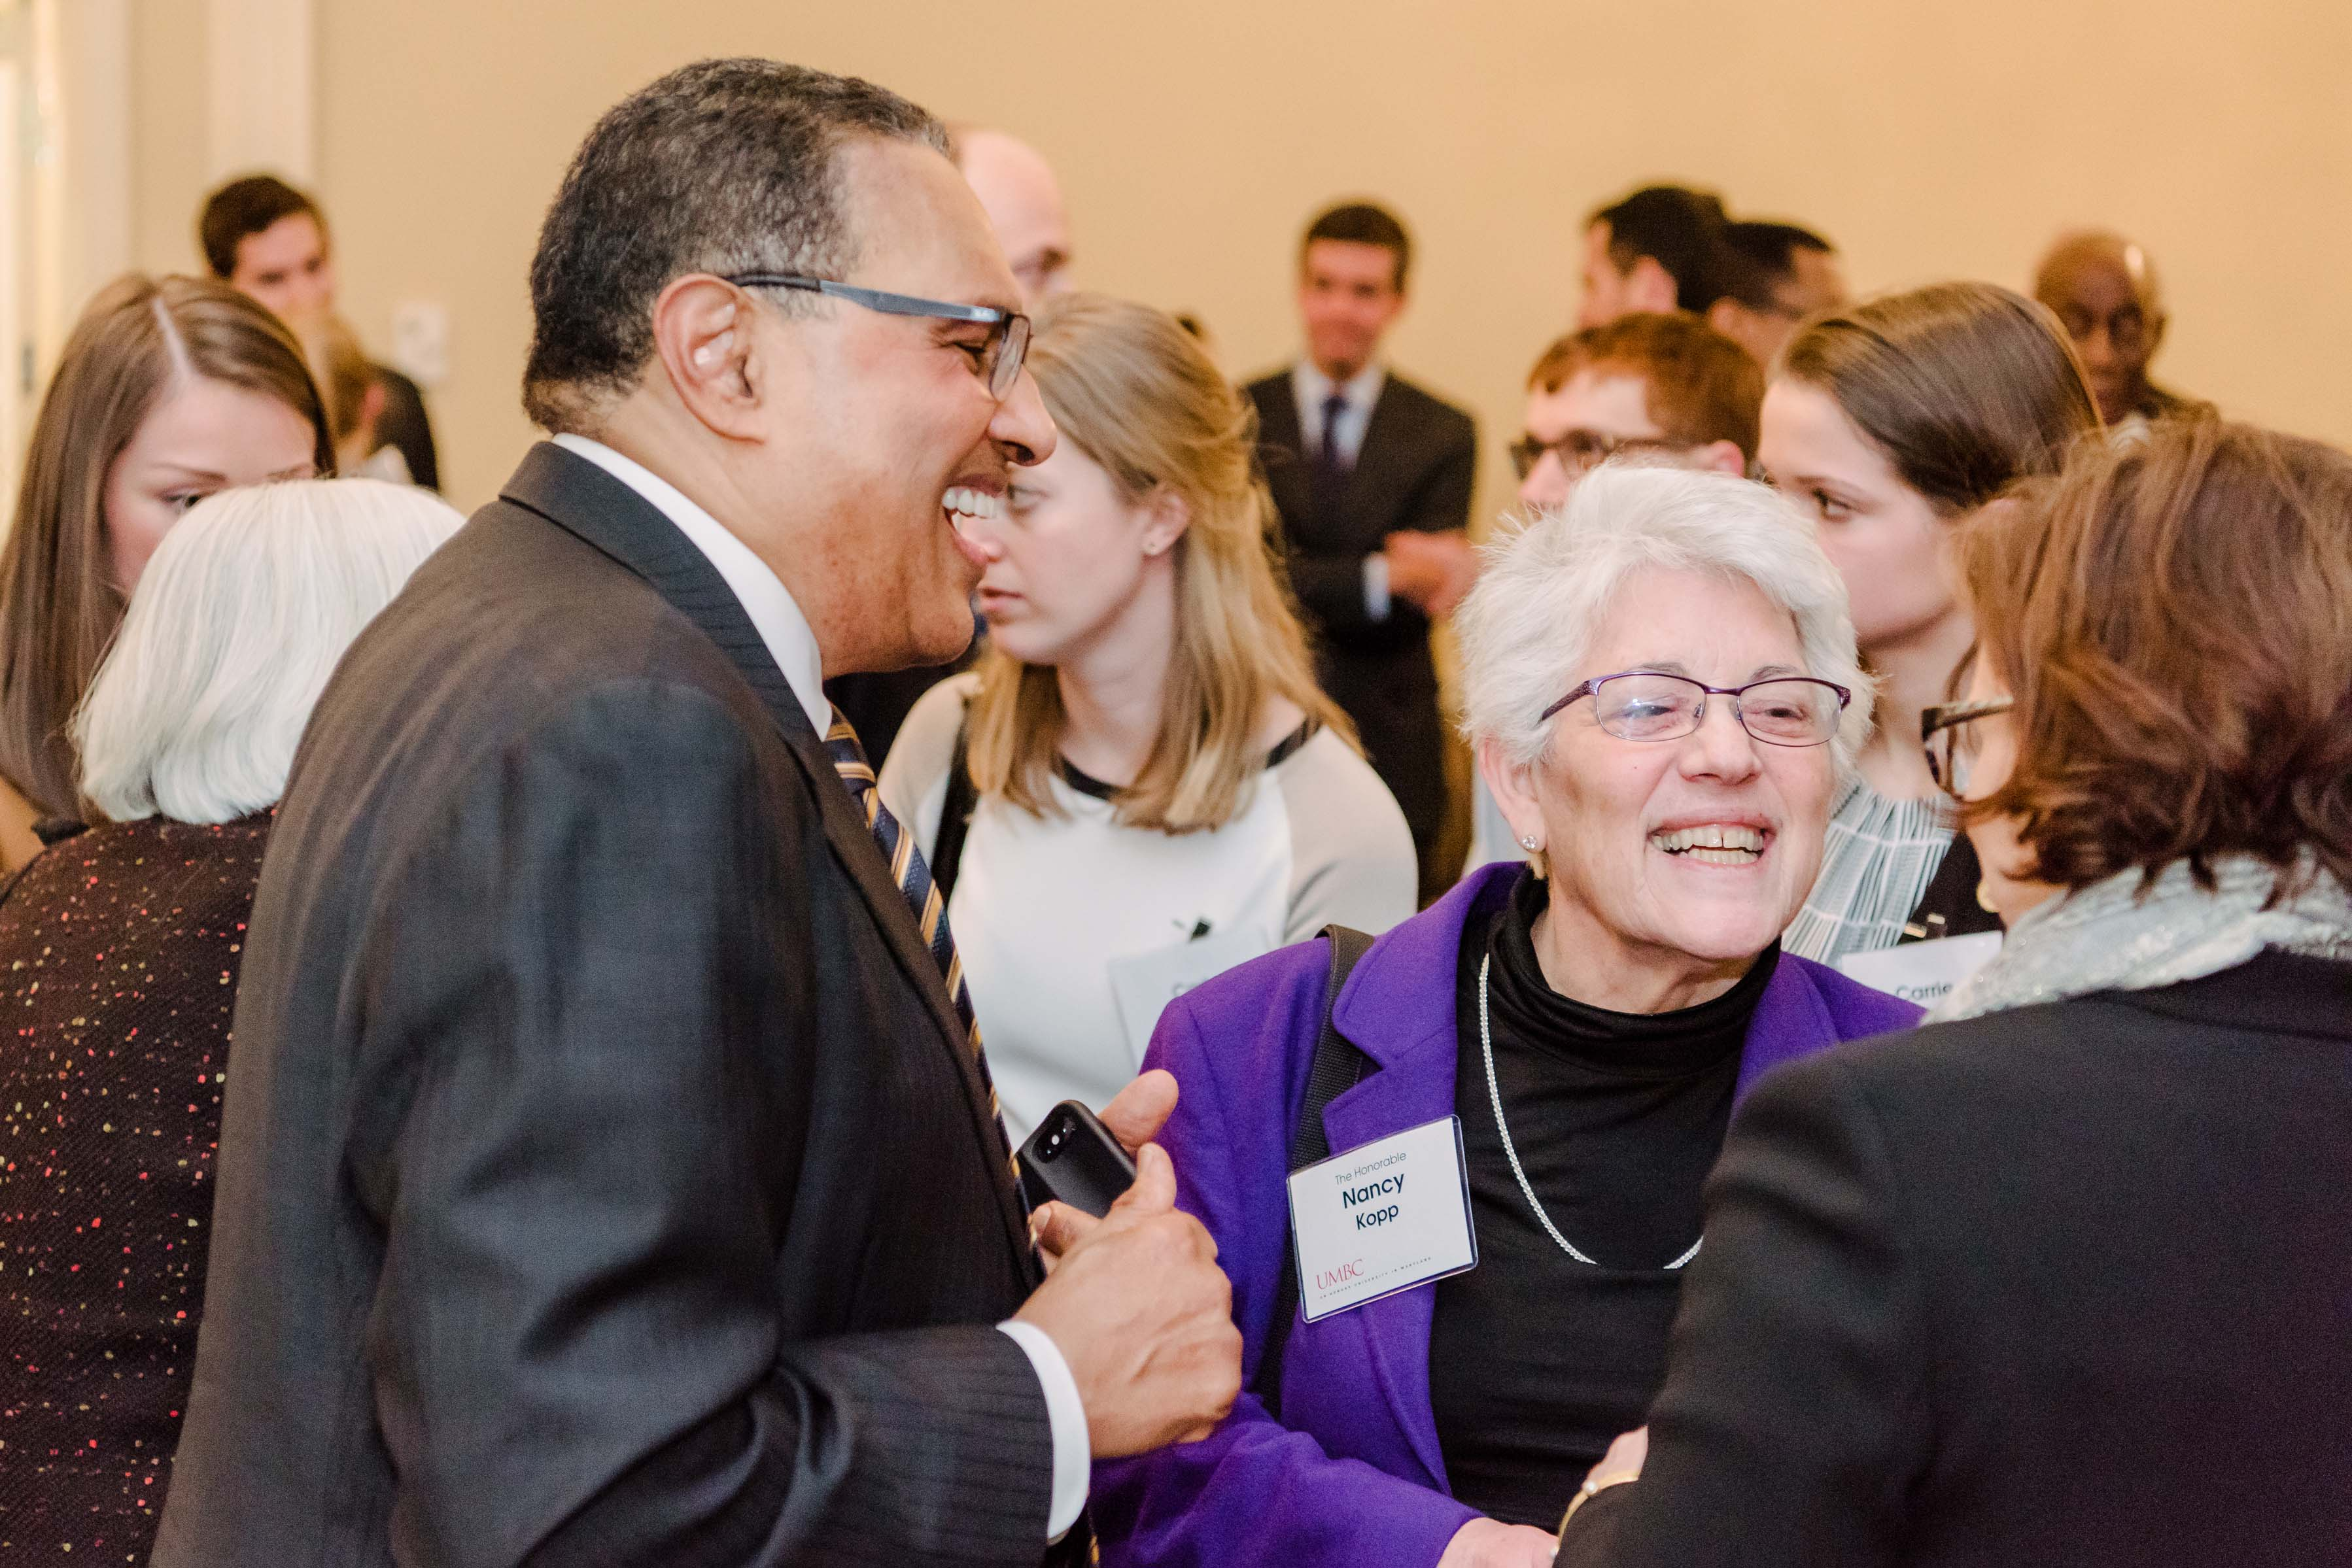 Hrabowski laughs with group of women at Annapolis alumni reception